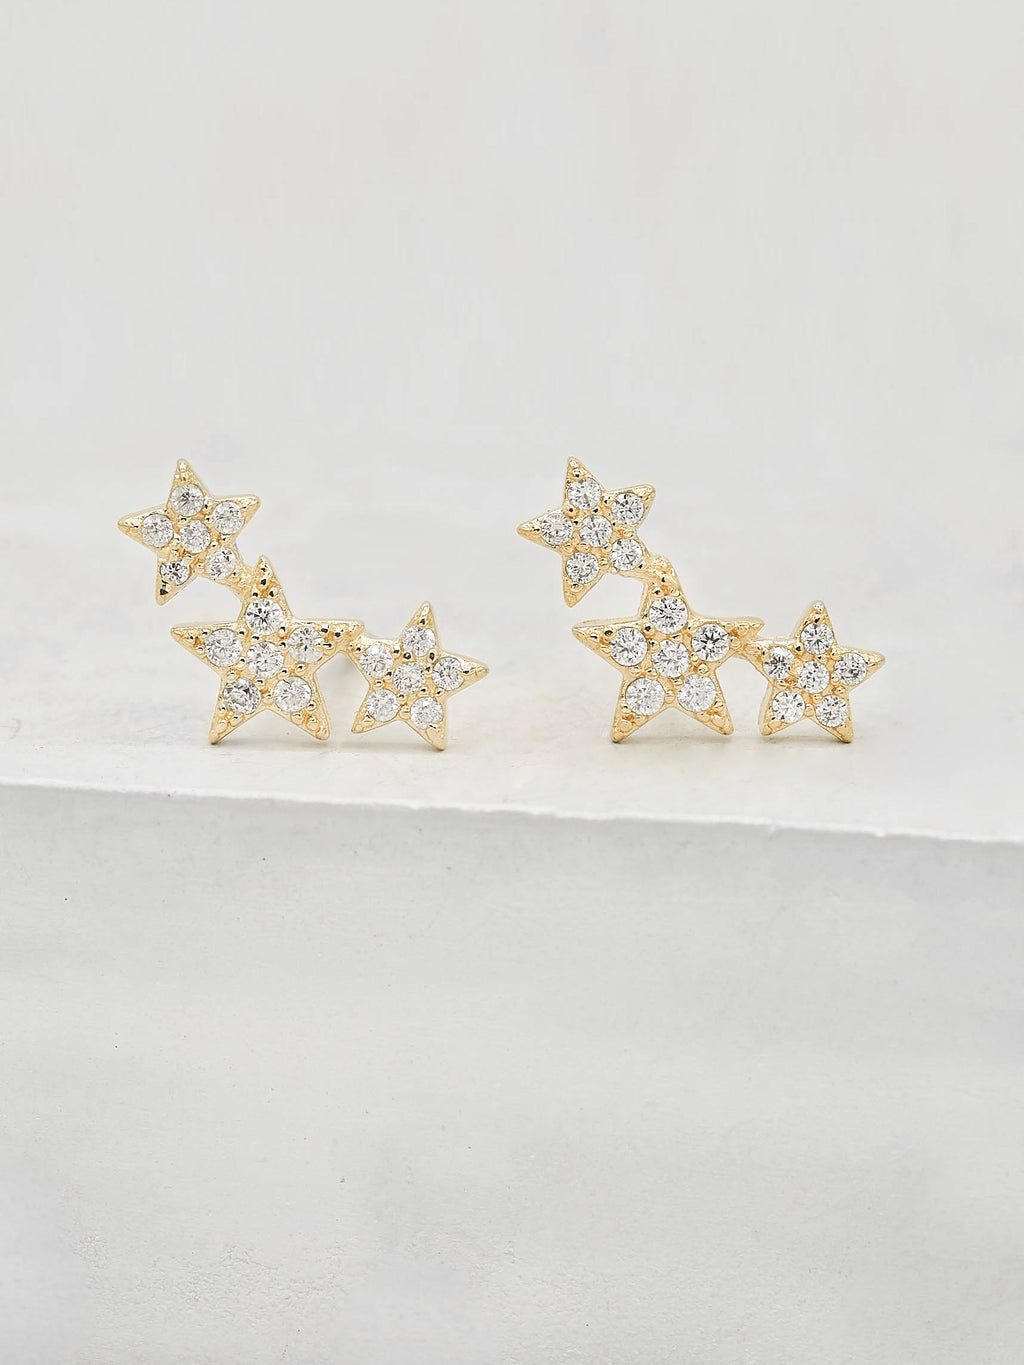 3 Star Studs With White tiny Round CZ Gold Stud Earrings by The Faint Hearted Jewelry